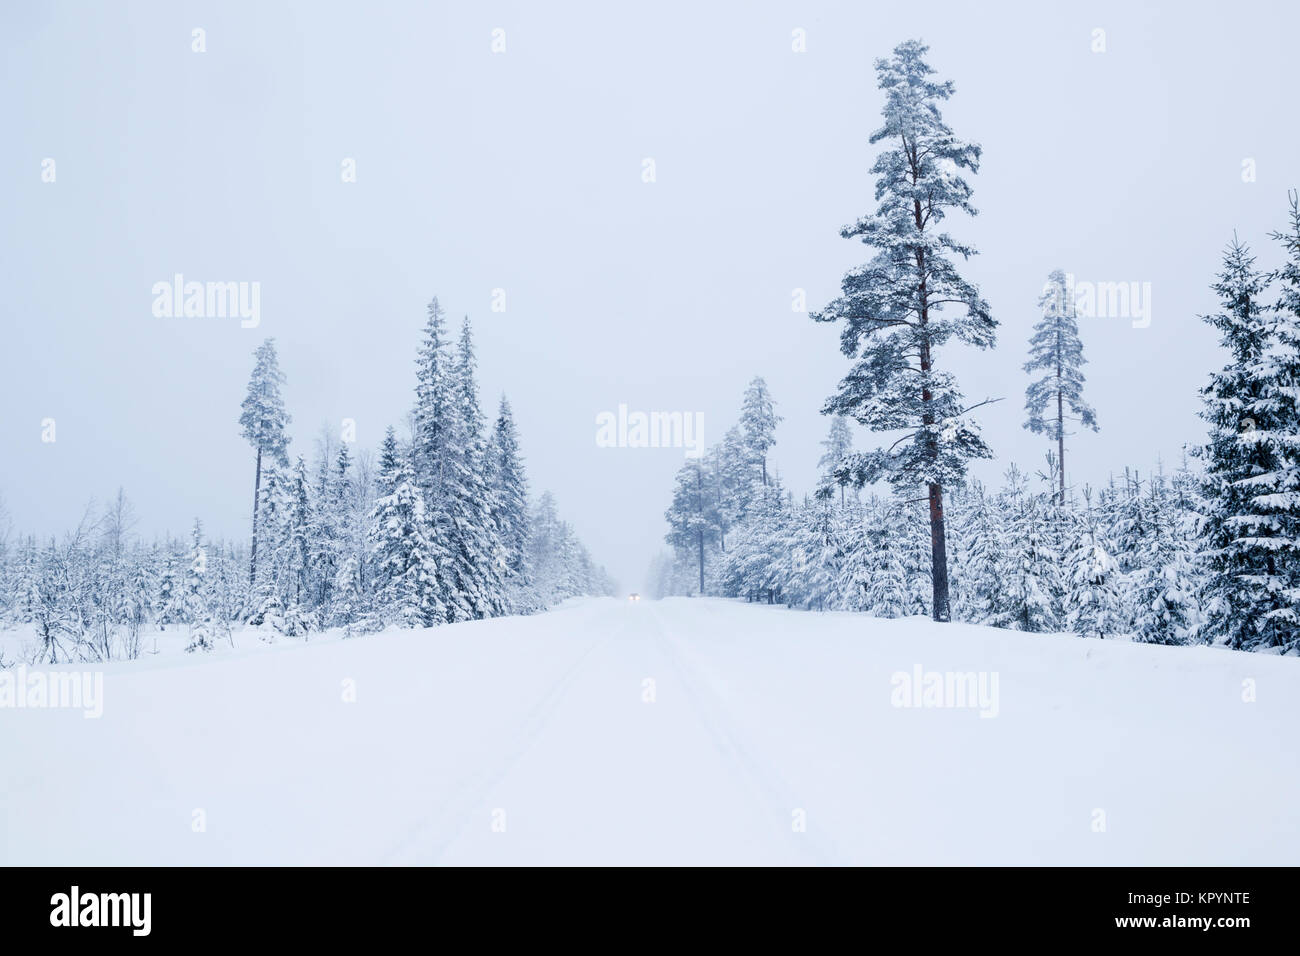 Taiga forest in winter conditions with a vehicle with headlights on approaching during a snow storm in Sweden - Stock Image